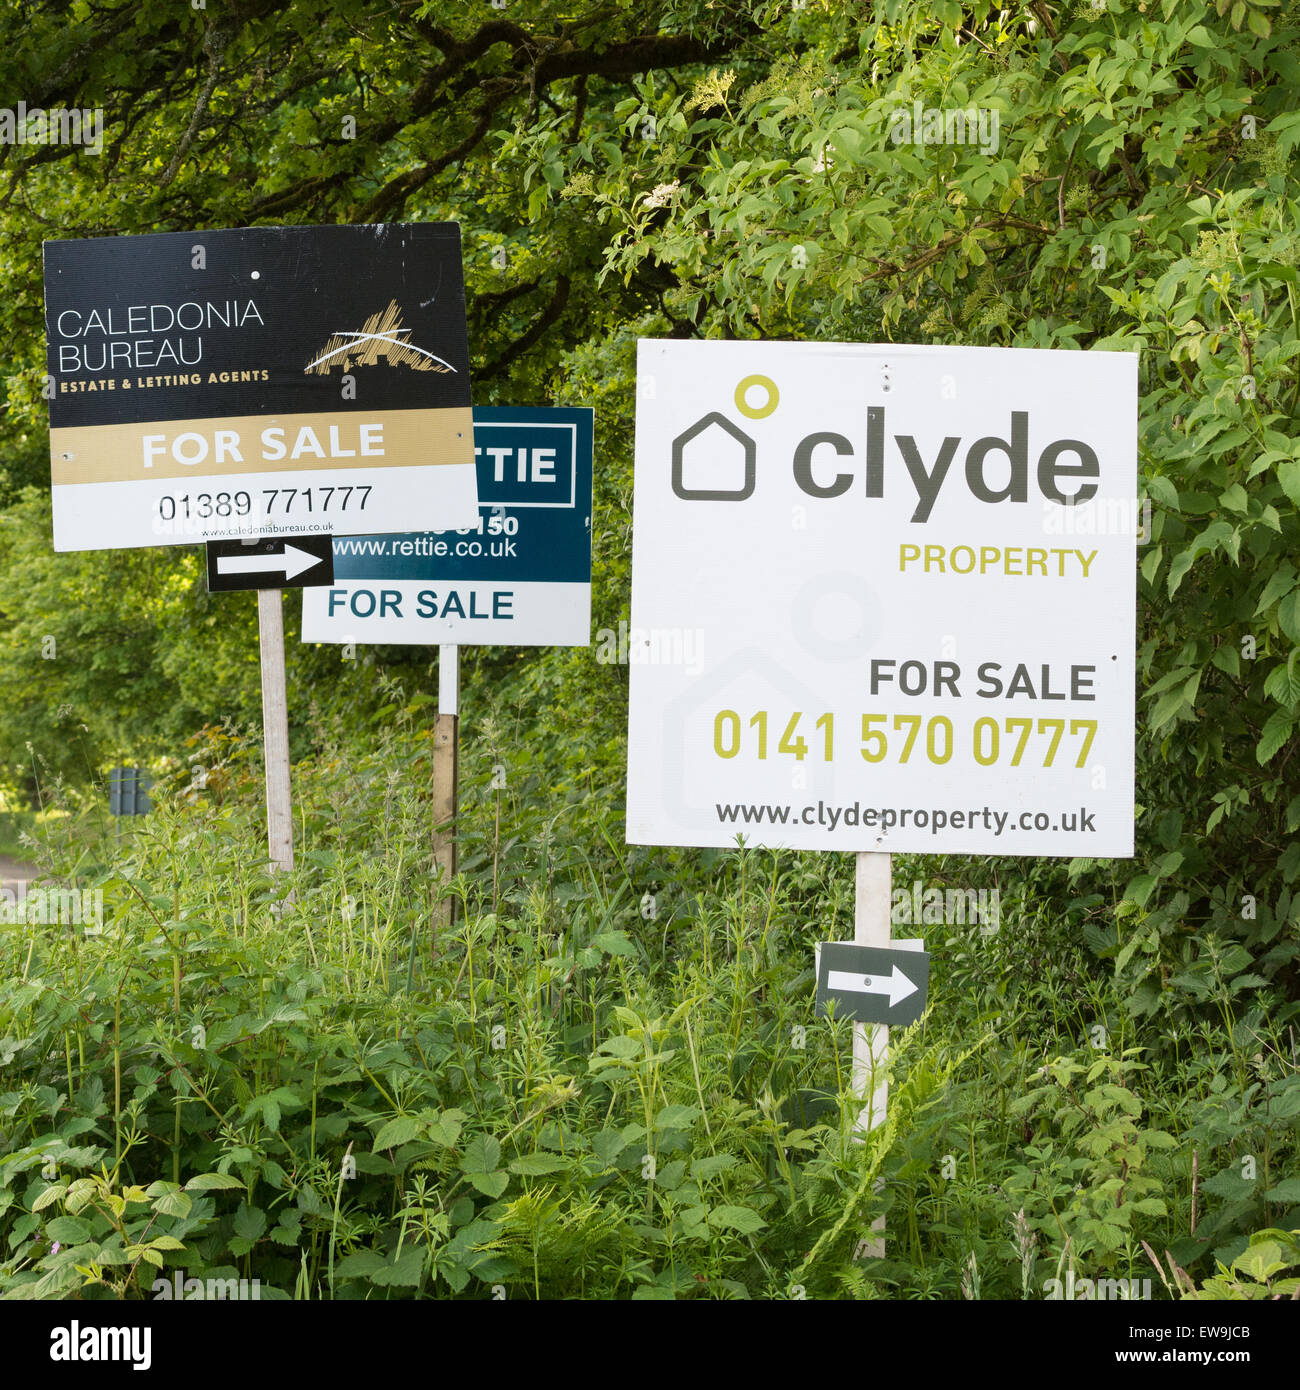 Property for sale signs, Scotland, UK - Stock Image